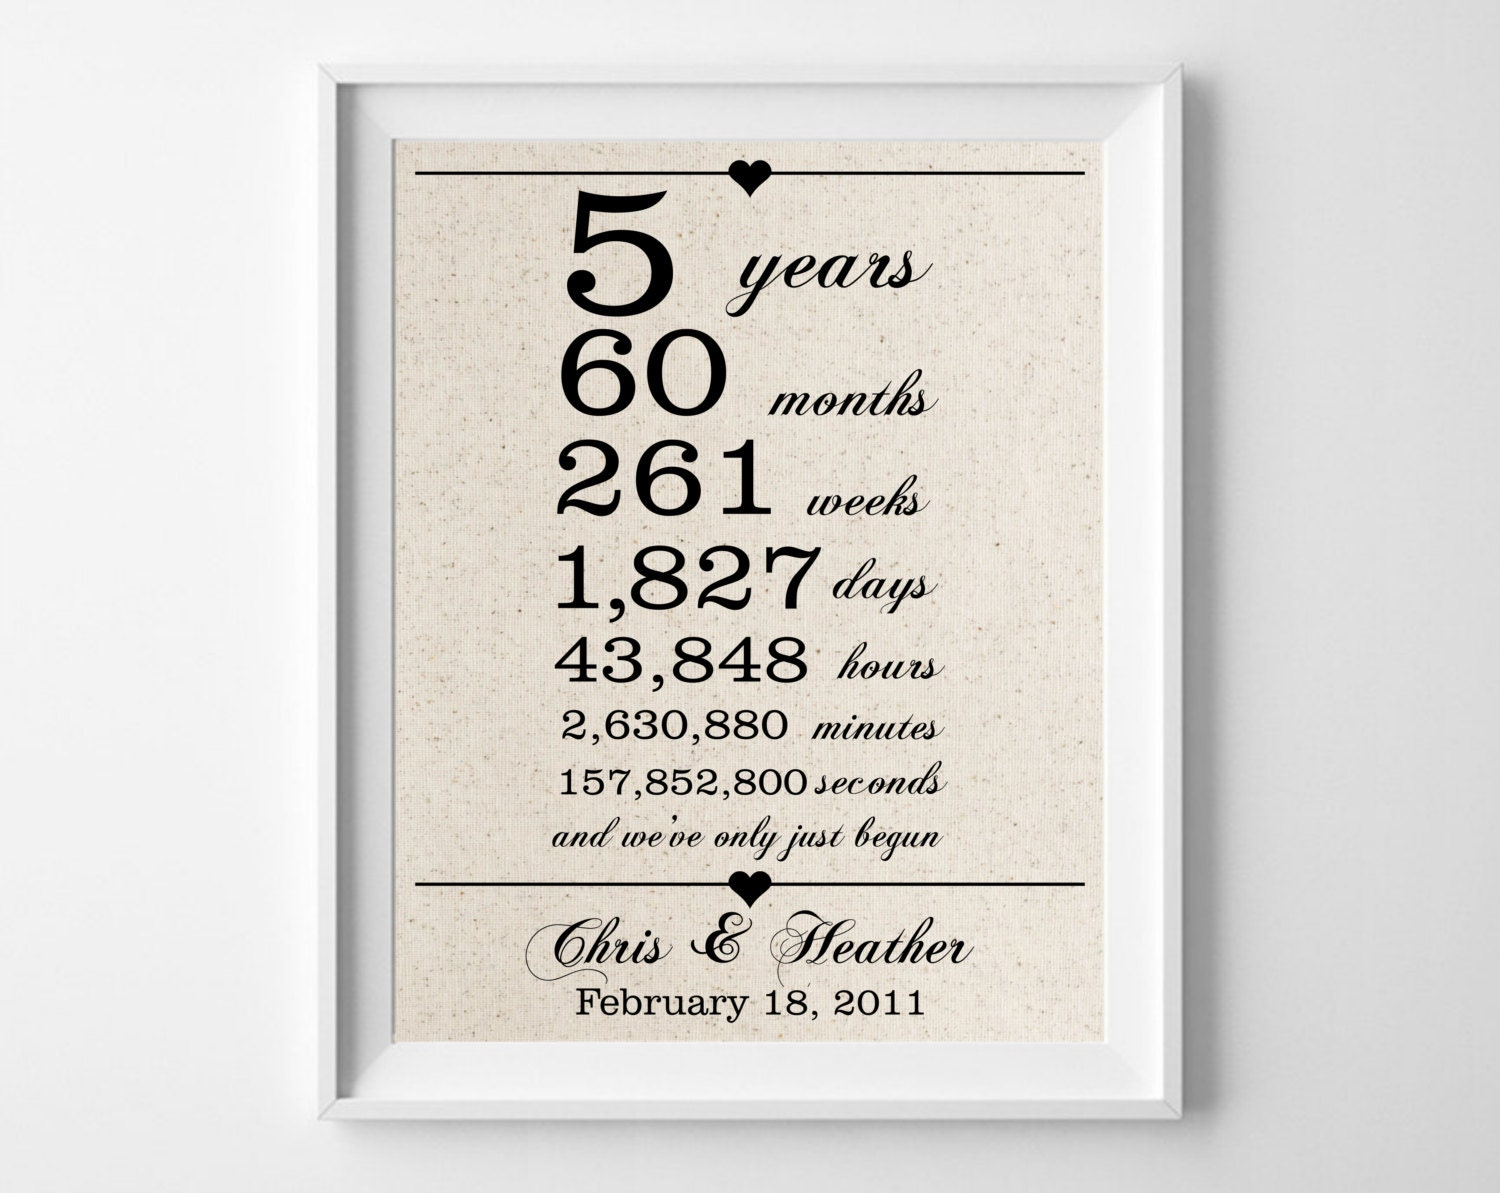 4th Wedding Anniversary Gifts For Husband: 5 Years Together Cotton Gift Print 5th Anniversary Gifts